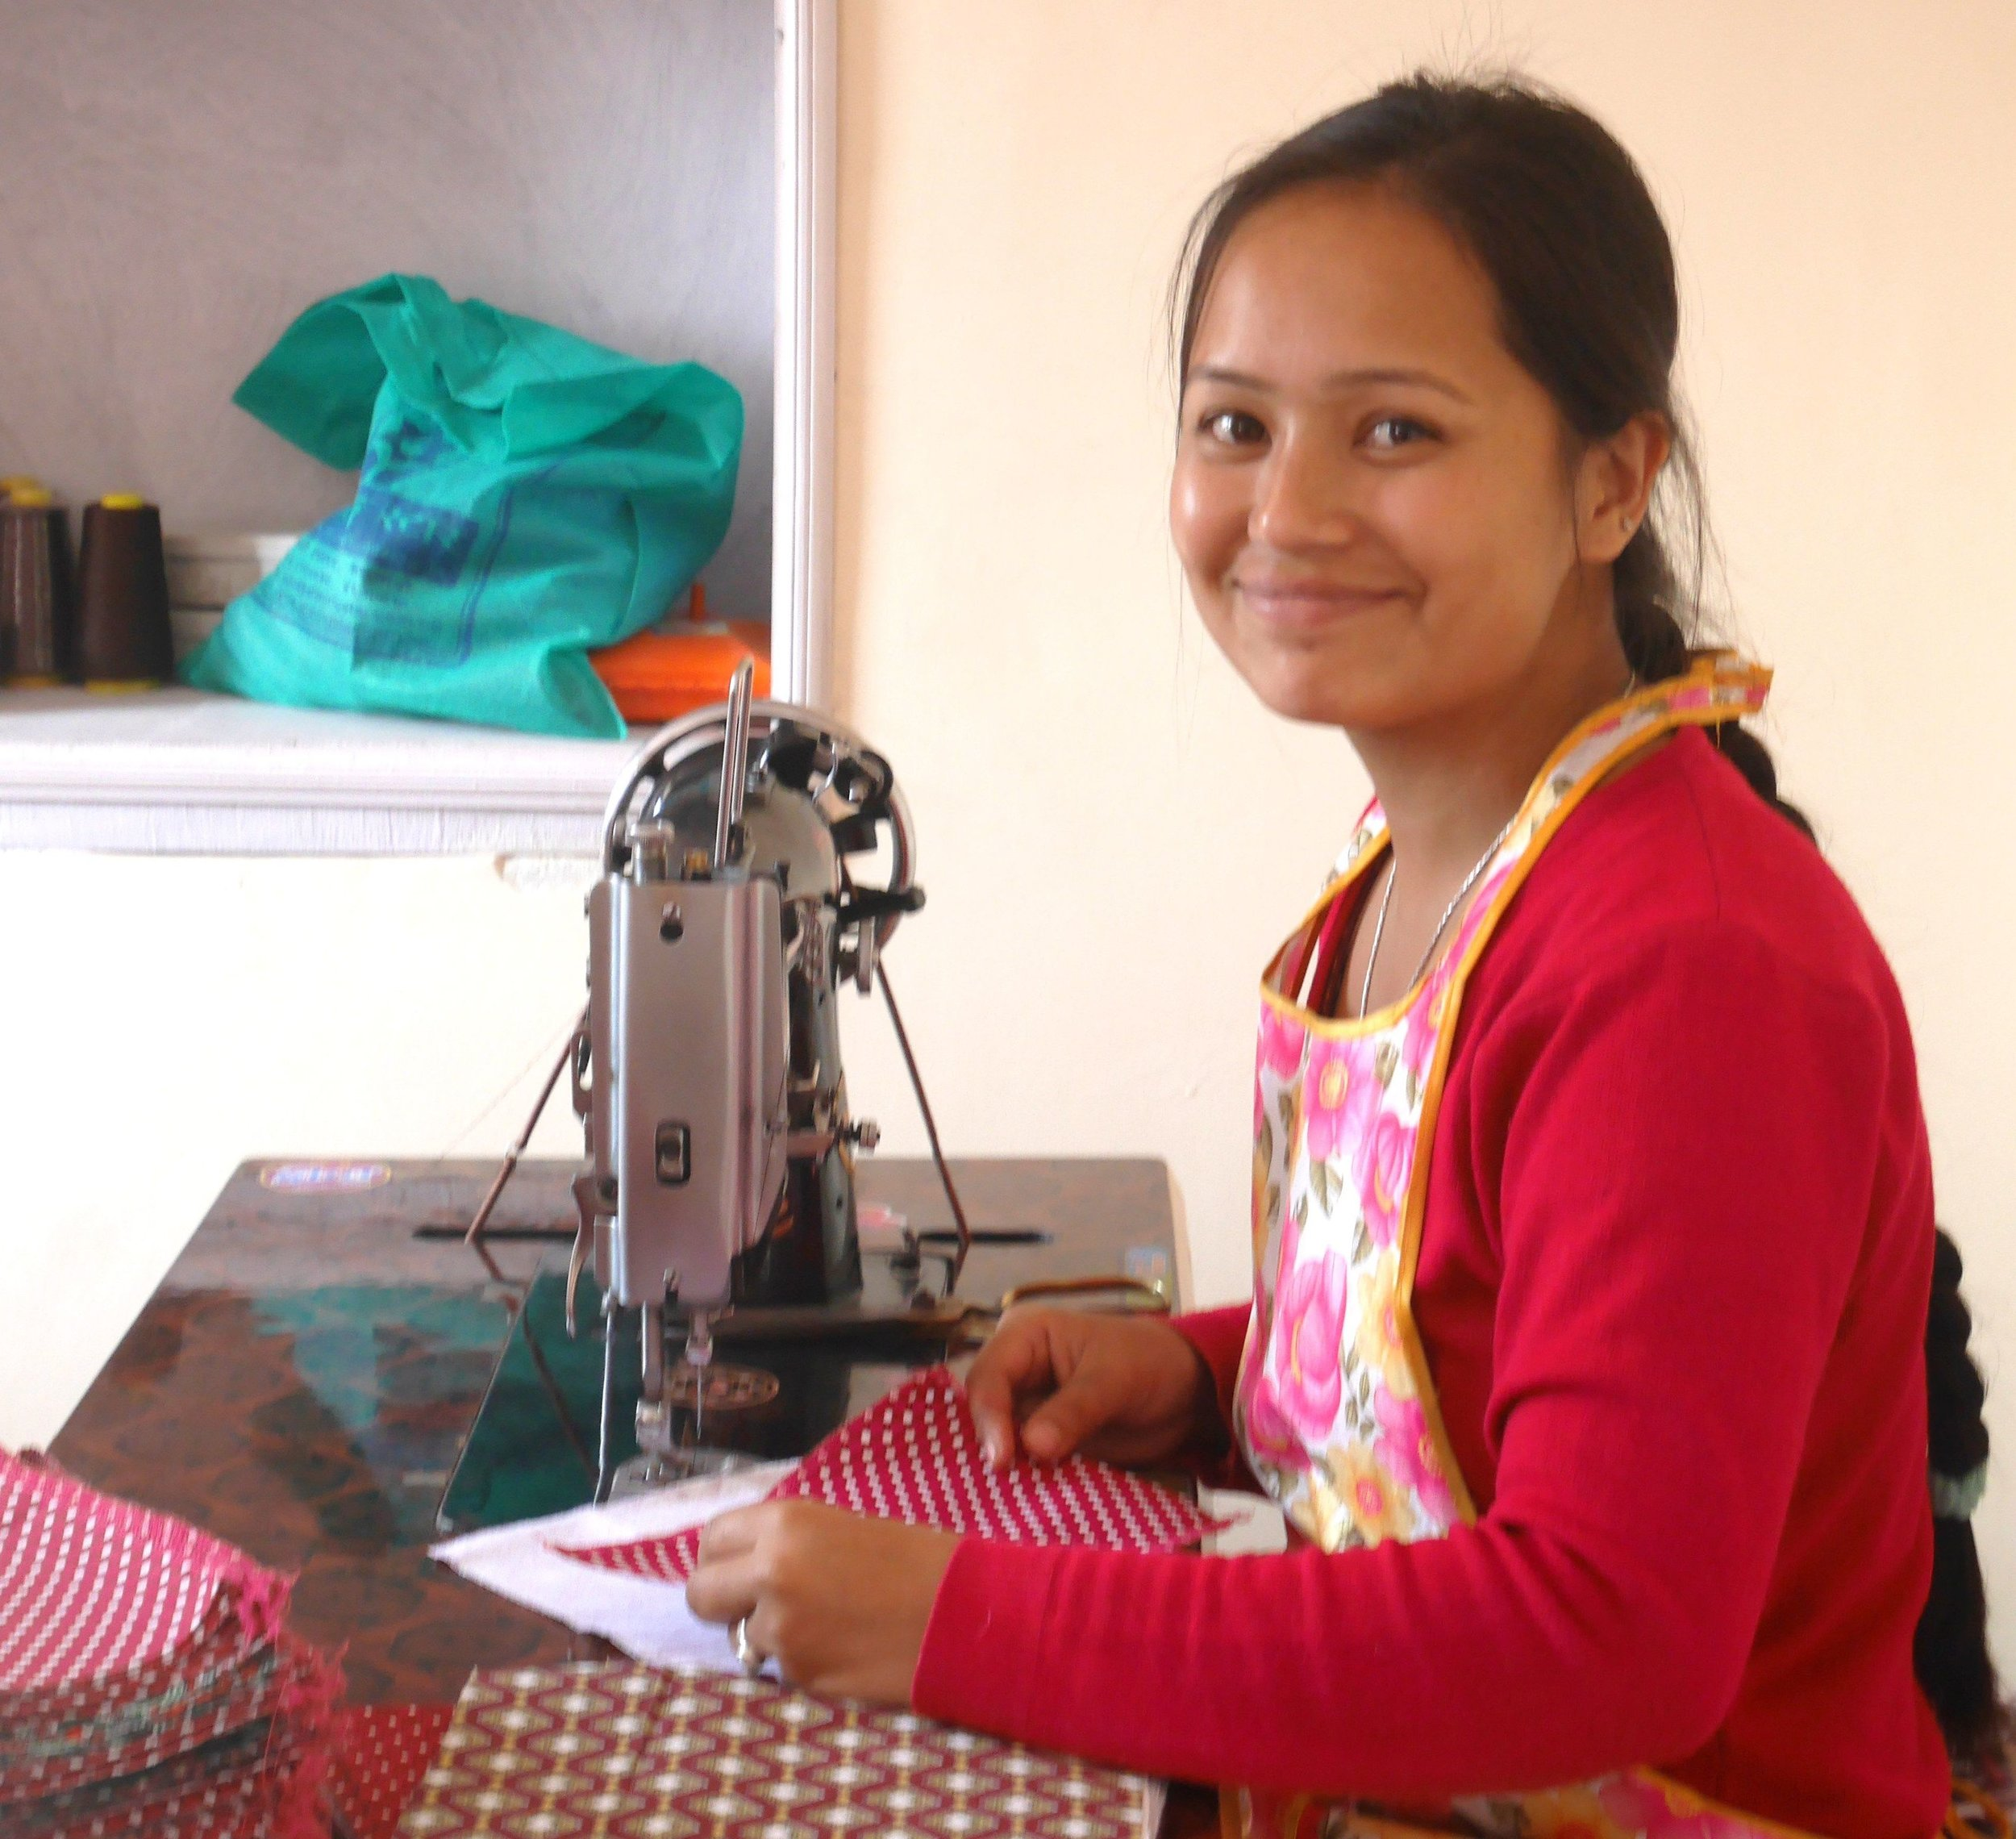 Deloraine Rotary is planning to provide residential vocational training for young people in Nepal.